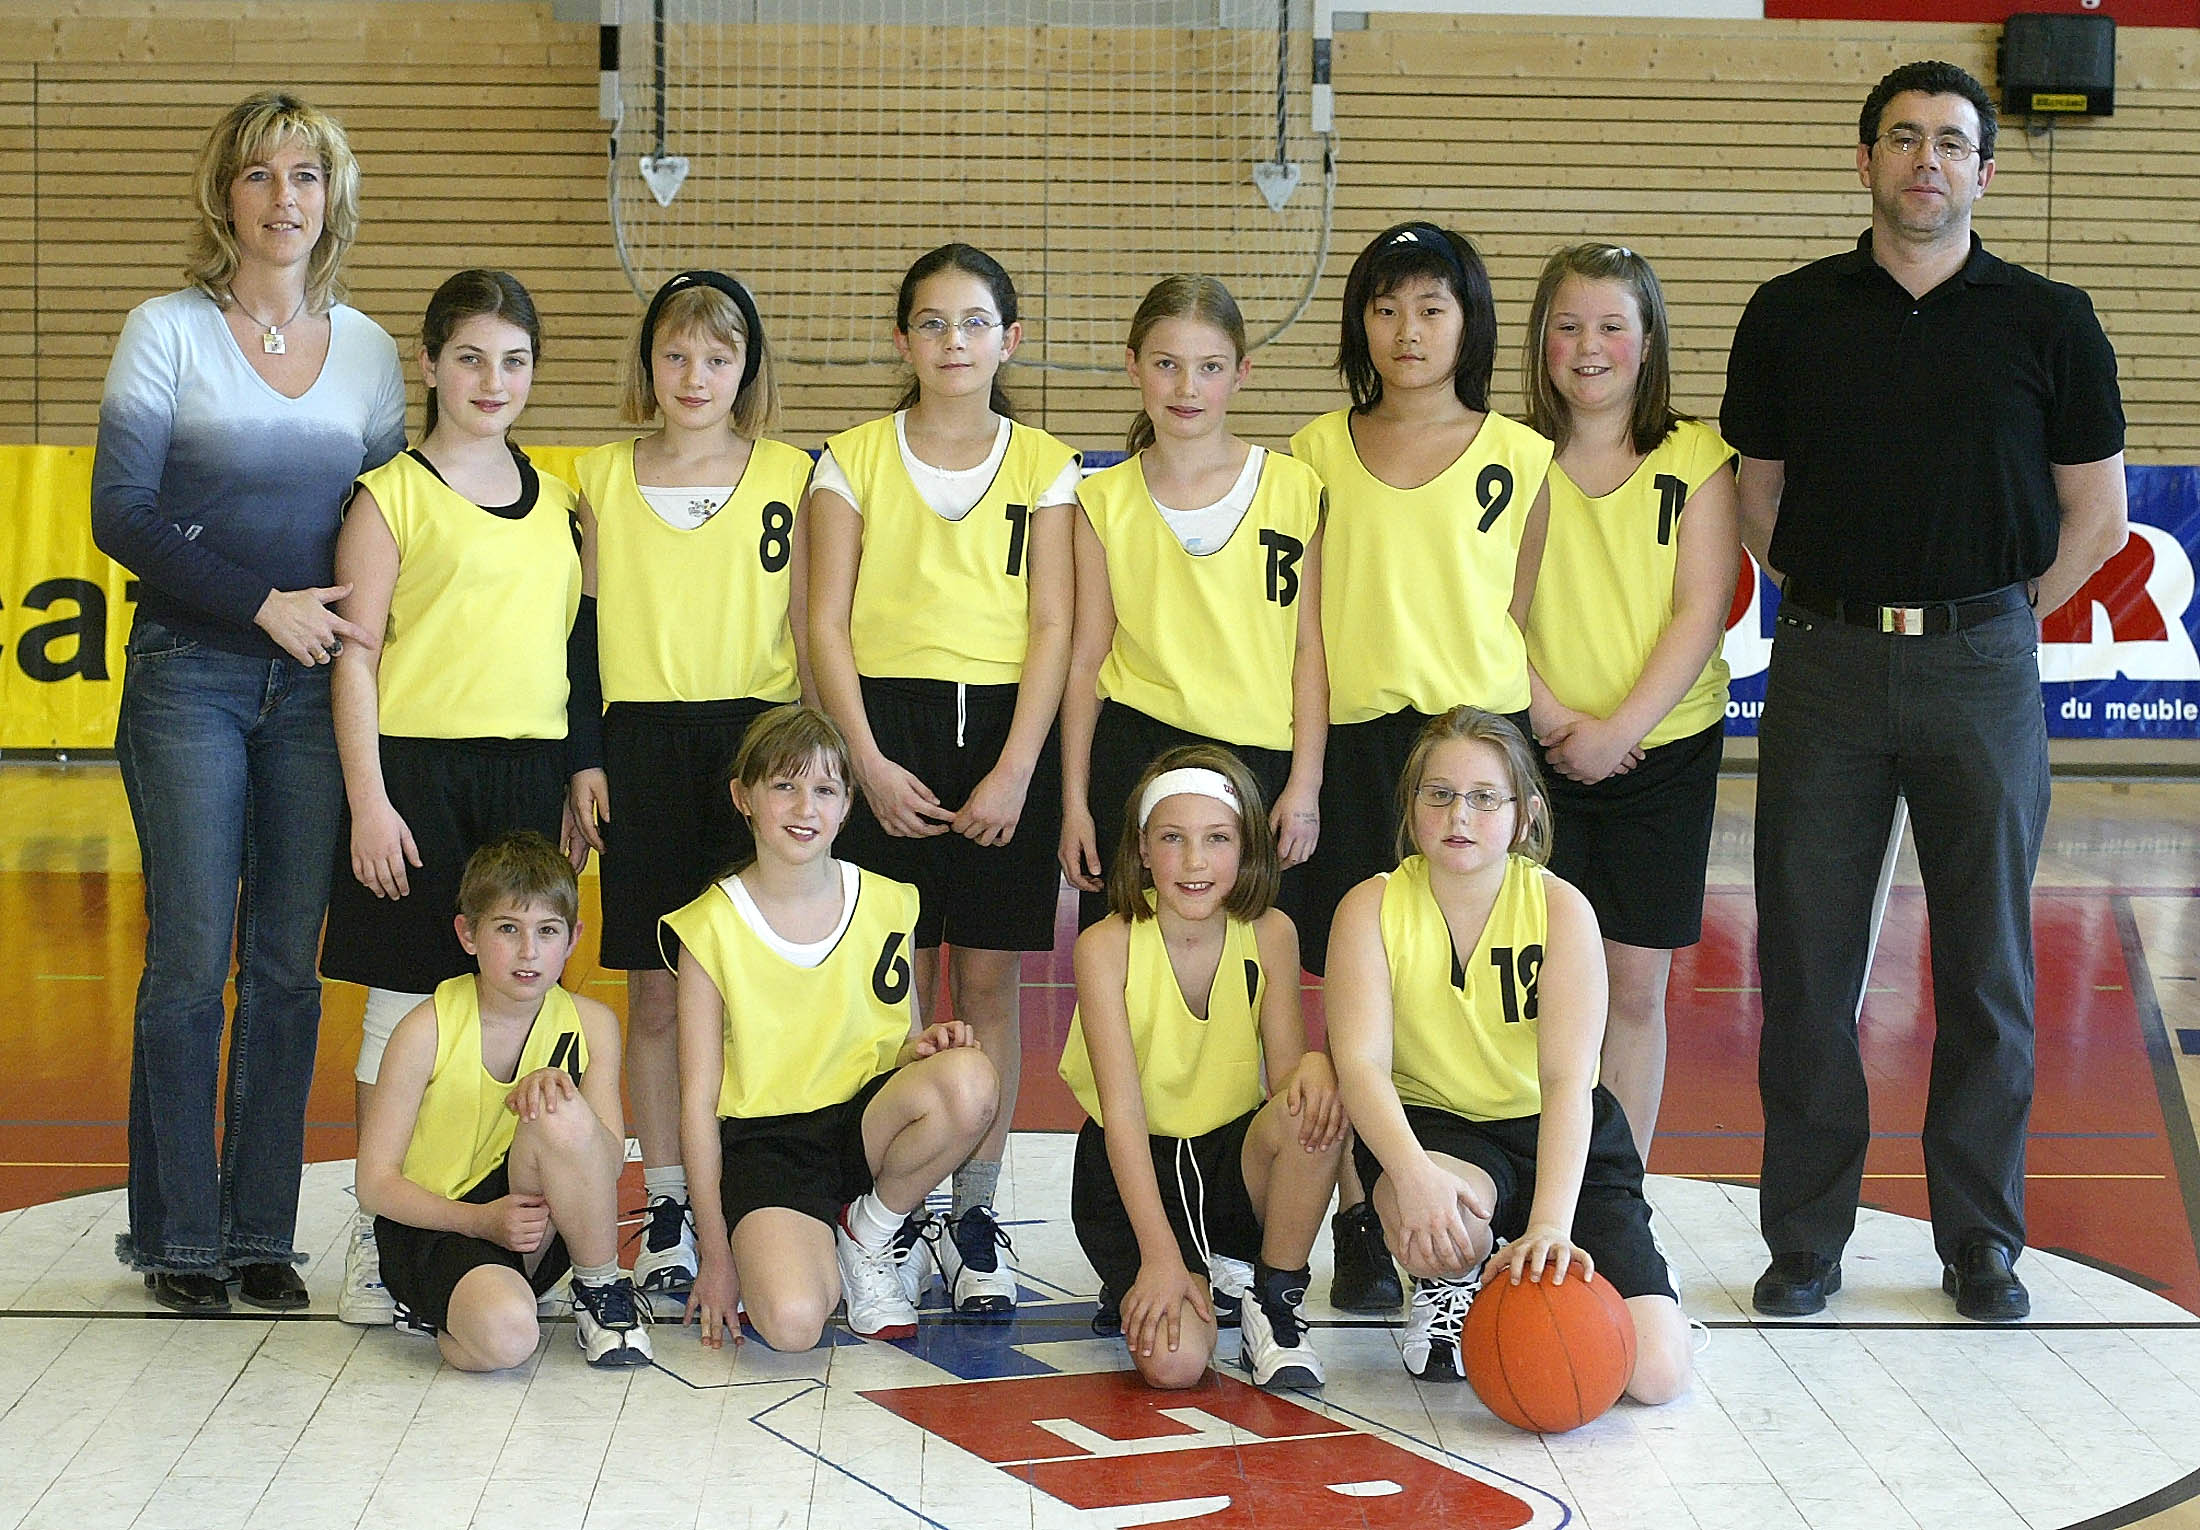 28 03 2004 BB AS Zolwer Fillettes B  Photo: Jeff Lahr